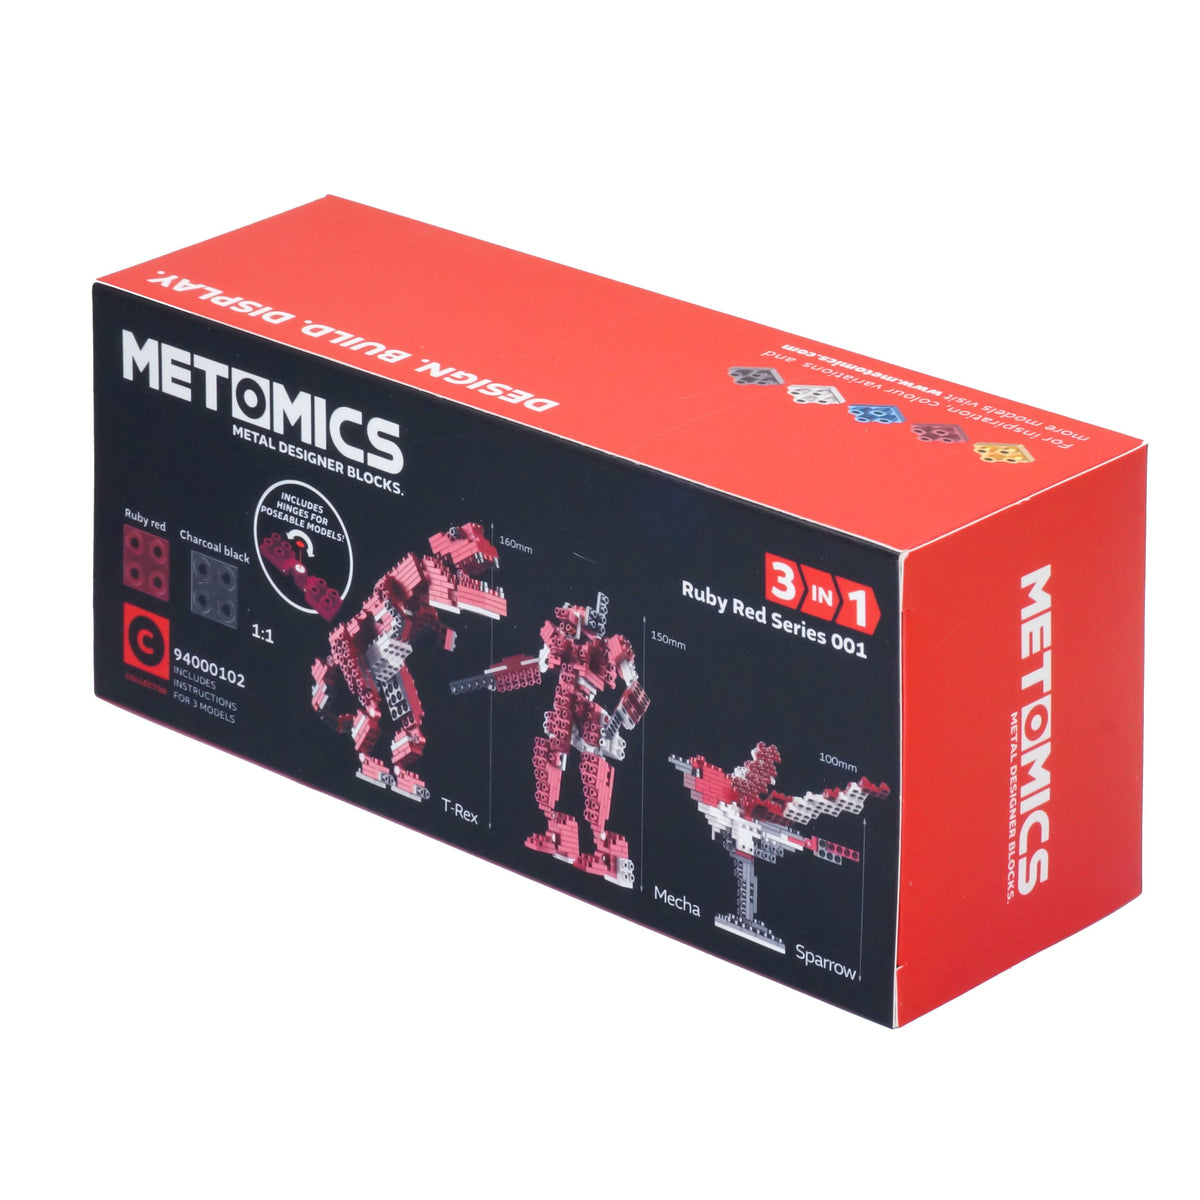 Metomics Sparrow Red 3-IN-1 290 Designer Aluminium Blocks